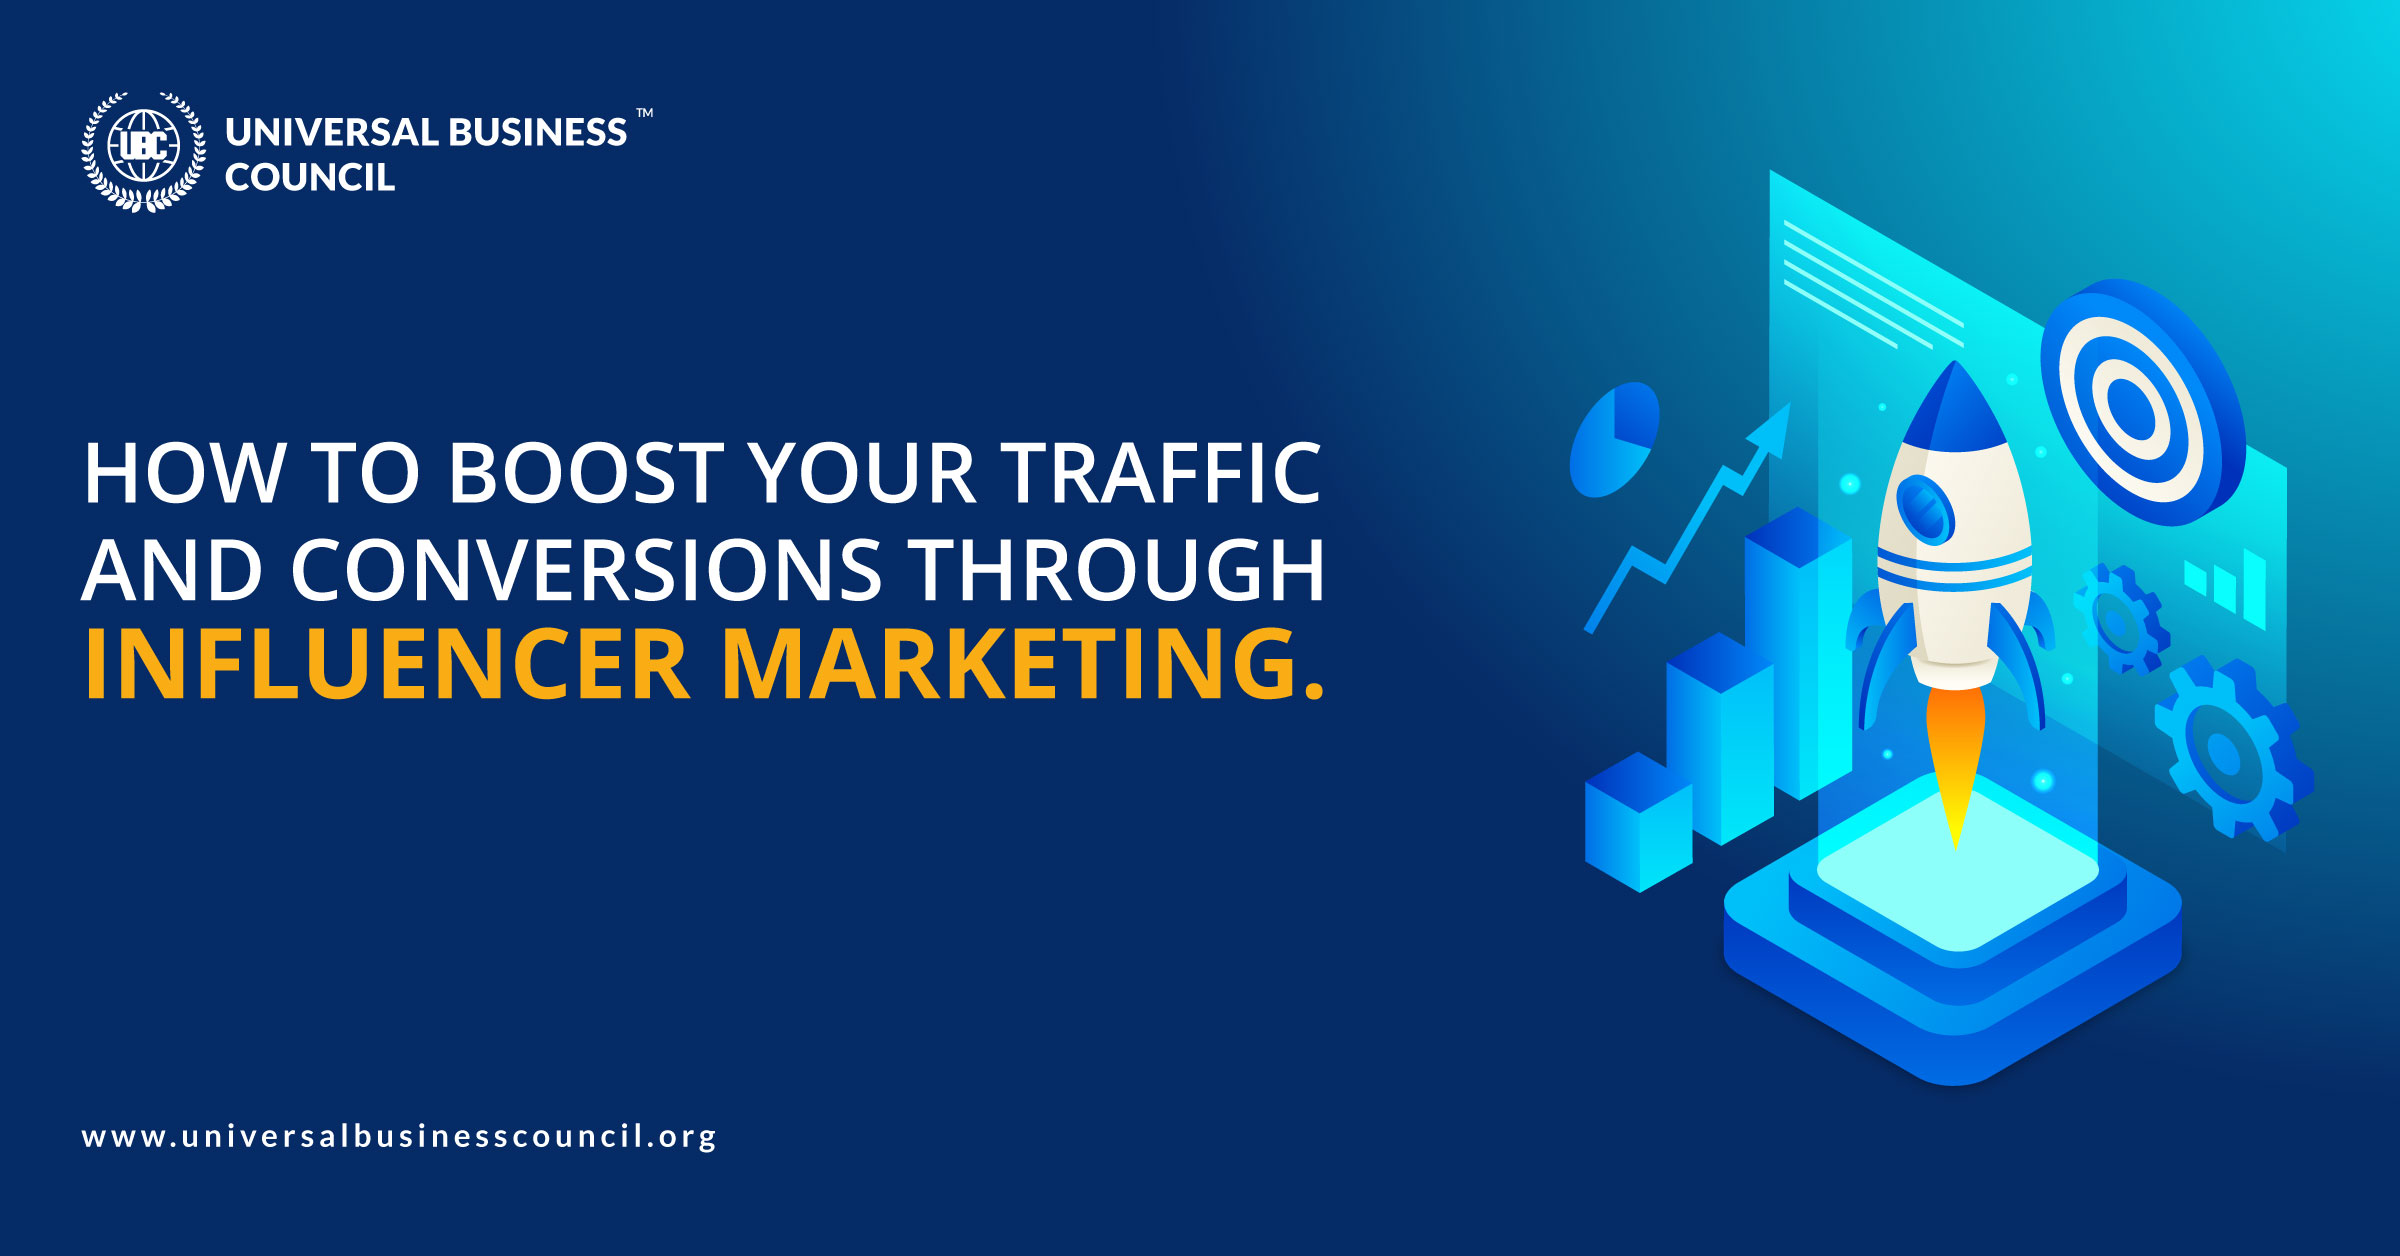 How-to-Boost-Your-Traffic-and-Conversions-through-influencer-marketing (1)